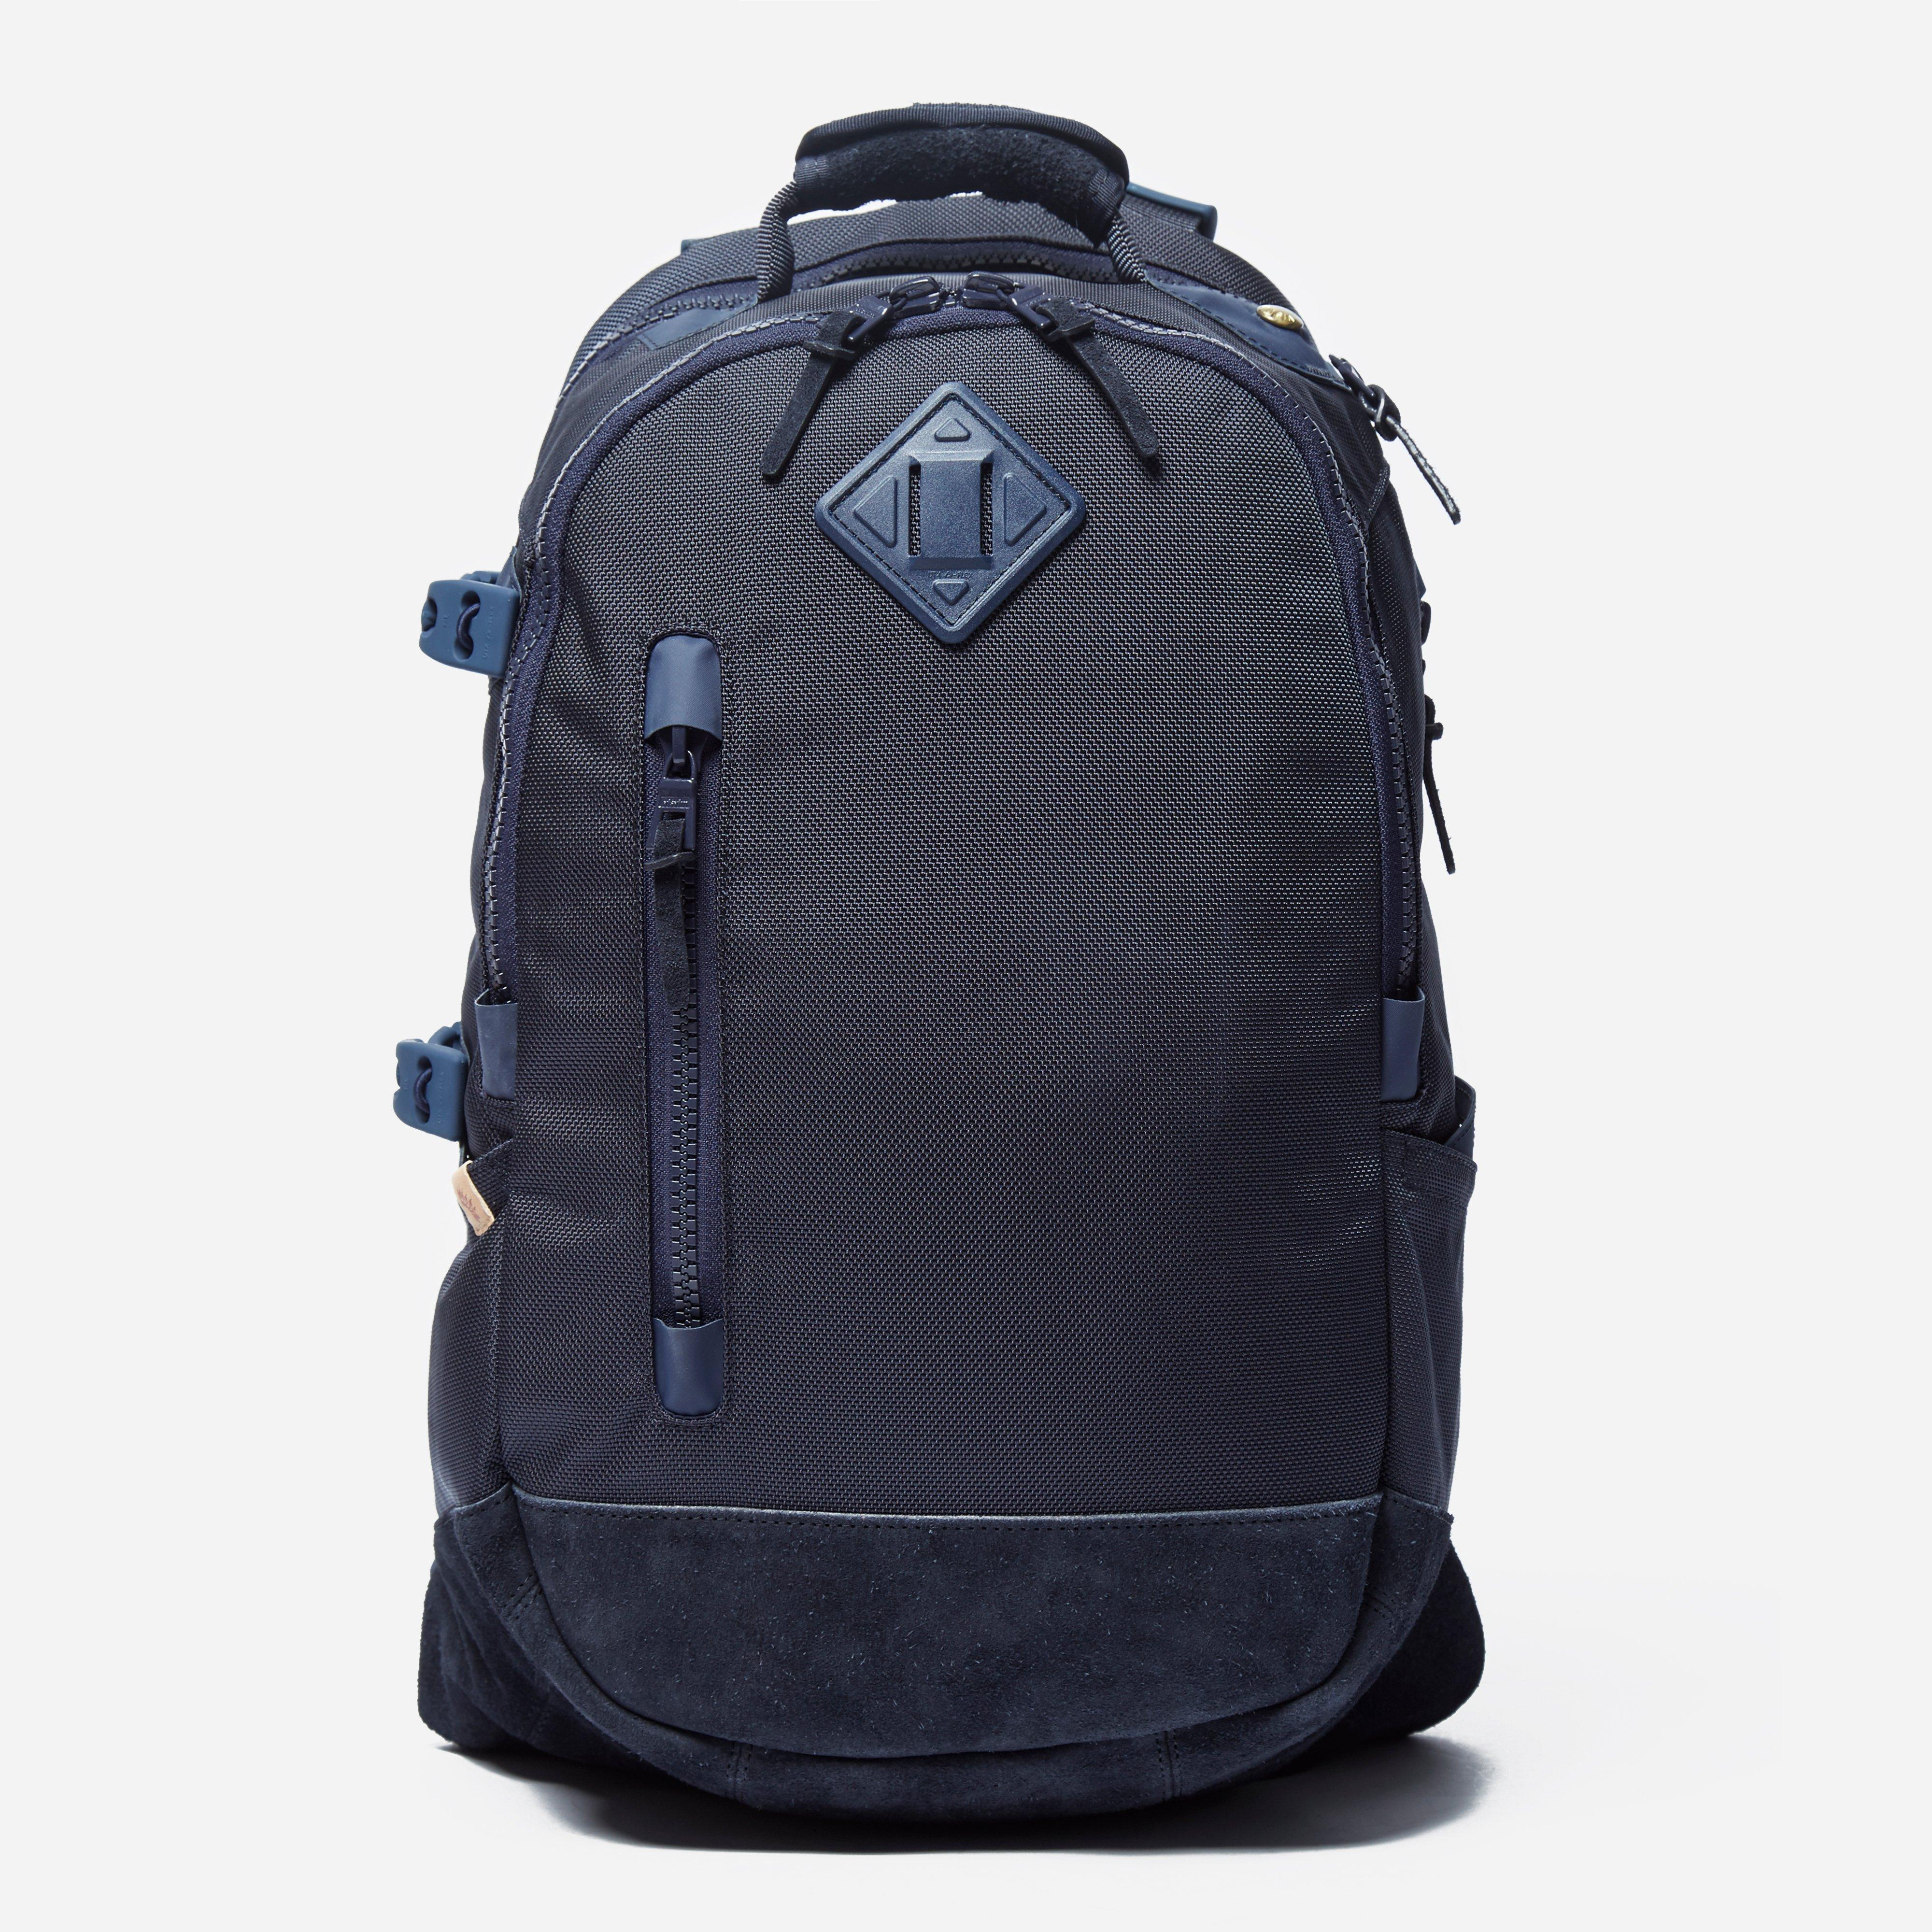 Visvim Ballistic Backpack 20L